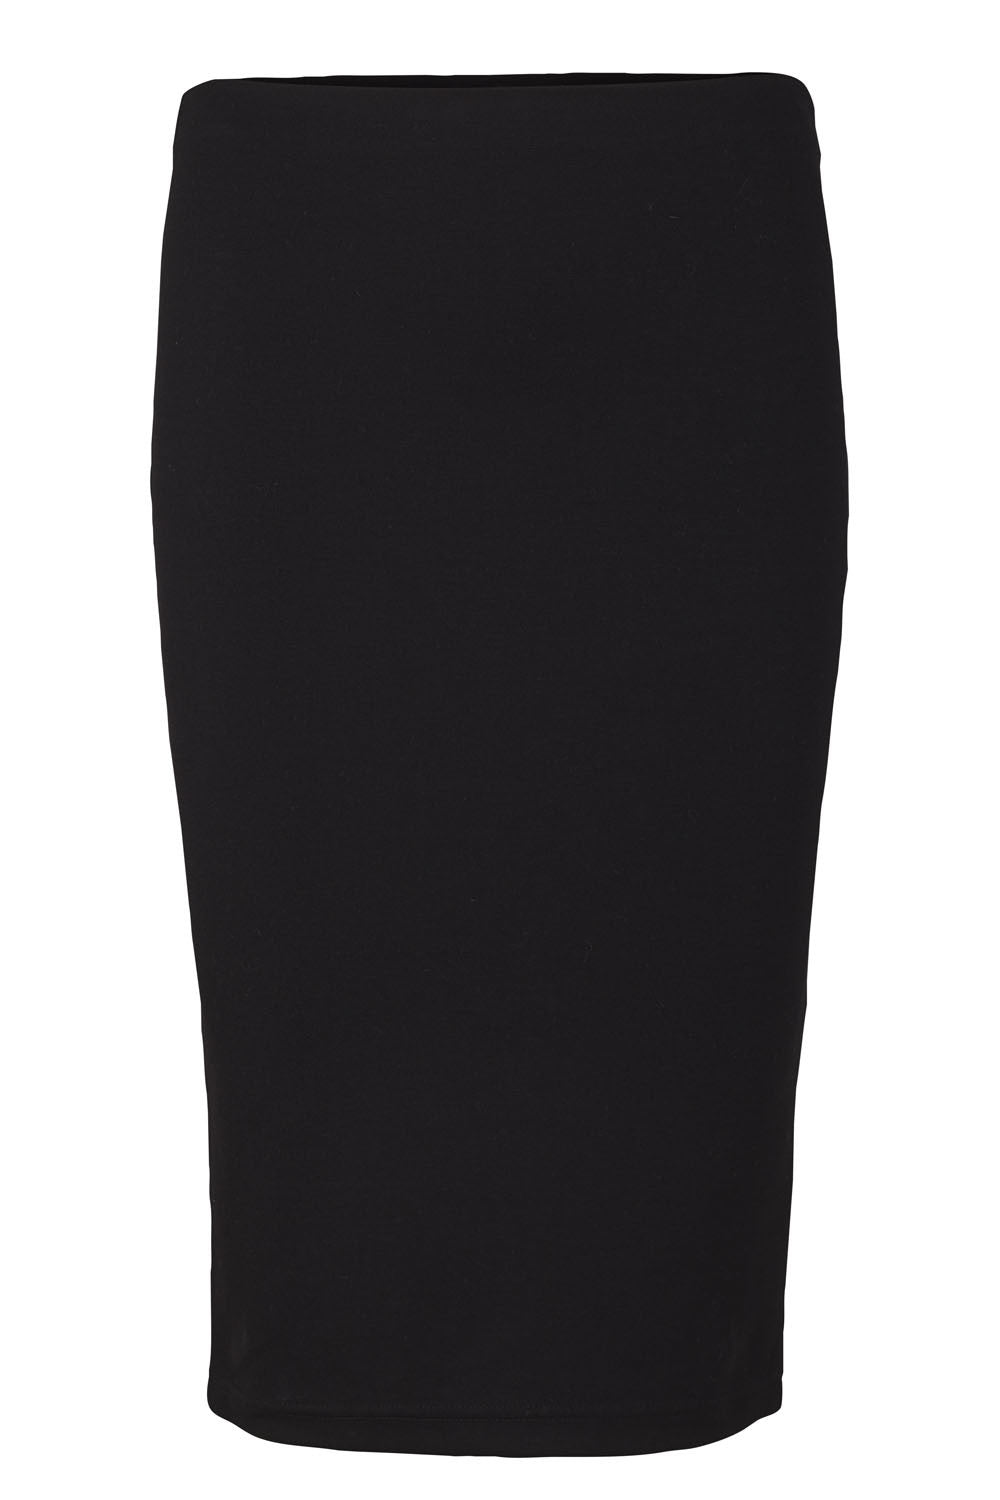 Øster Søgade pencil skirt